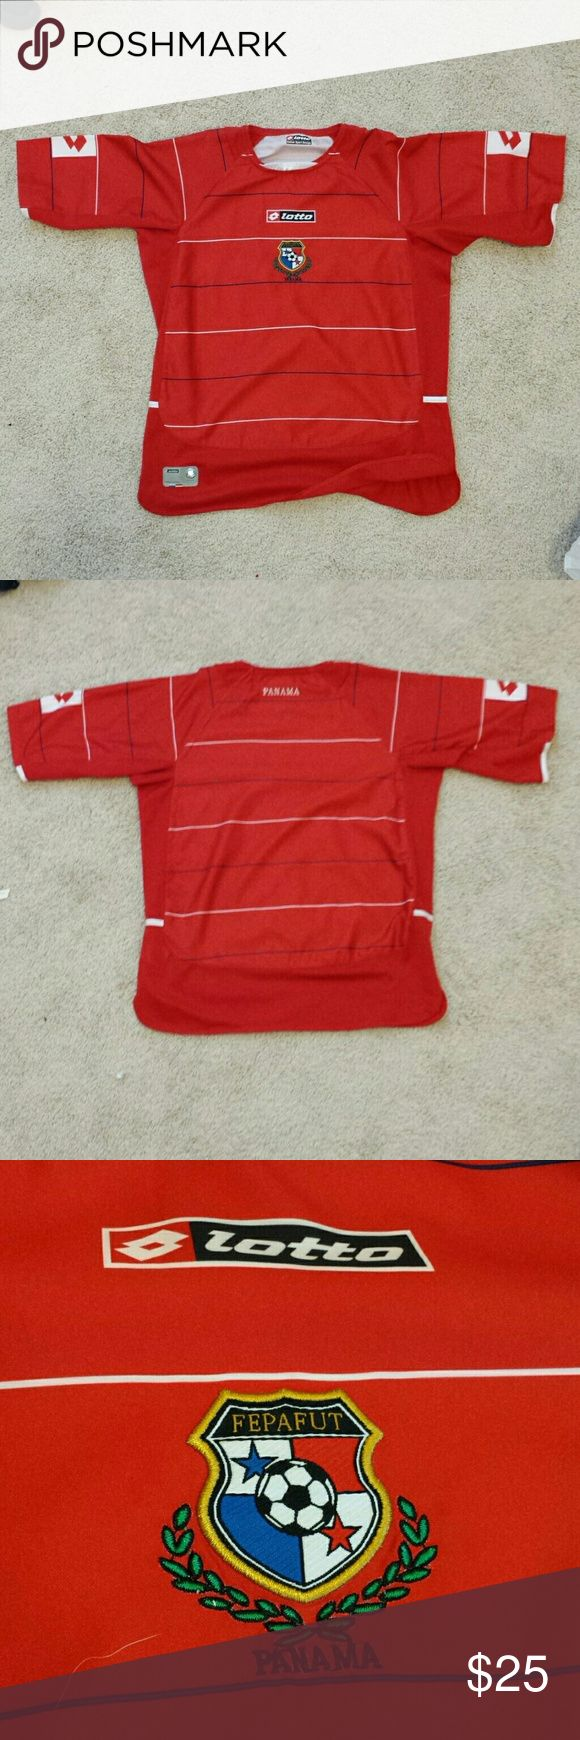 Classic Panama soccer jersey Beautiful red classic Panama national team jersey. Size small. Authentic by lotto. Panama logo is stitched on jersey. Jersey looks like new. Average price for this jersey, year and condition is $70 lotto Shirts Tees - Long Sleeve